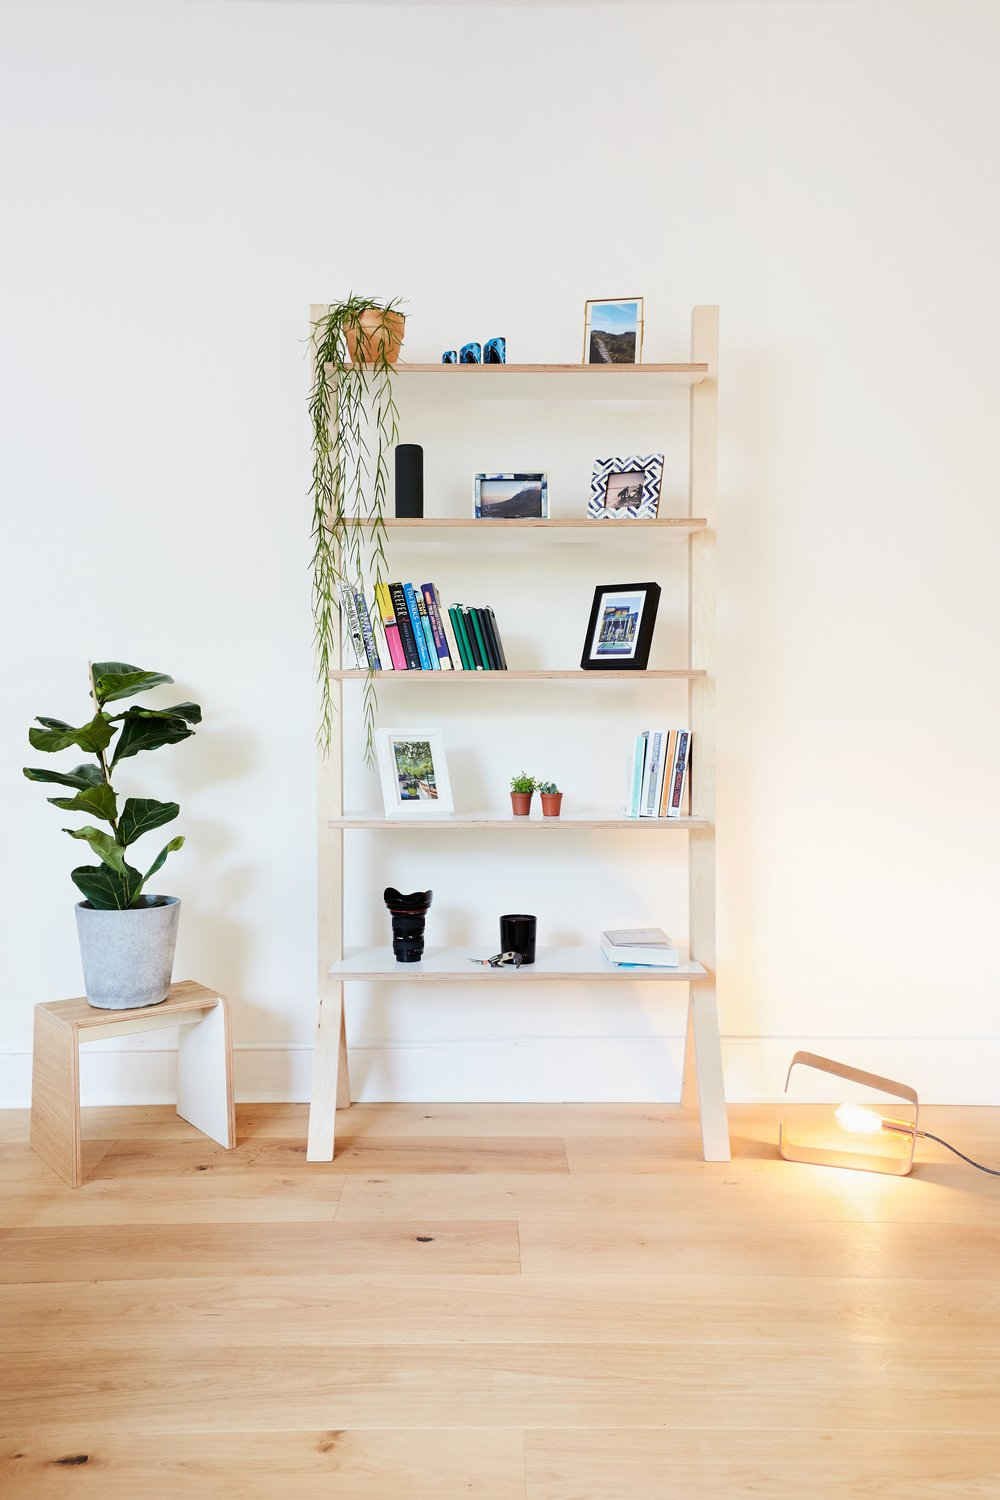 House of Lozi Shelves